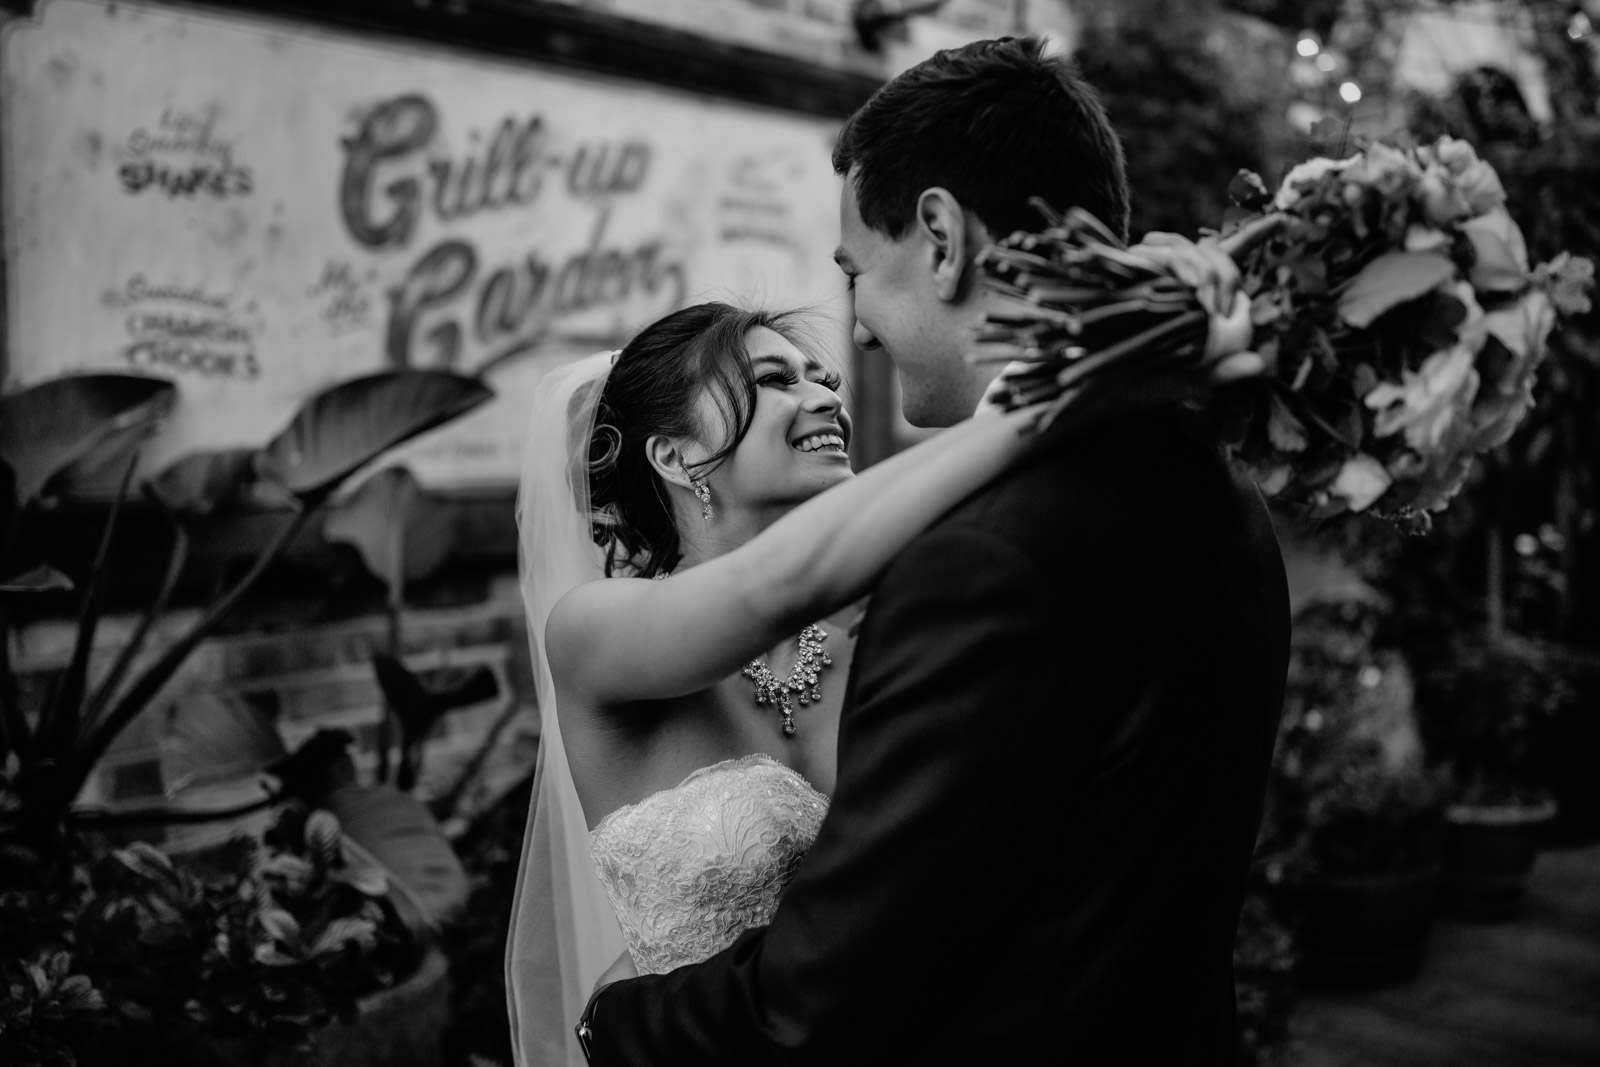 A black and white image of a man and woman embracing on their wedding day. The woman has dark hair in an up-do and a veil hanging from her bun, she has her arms around the man's neck as she holds a bouquet of flowers, both the man and woman are smiling. In the background is an old-style billboard with cursive text on it, and some plants.